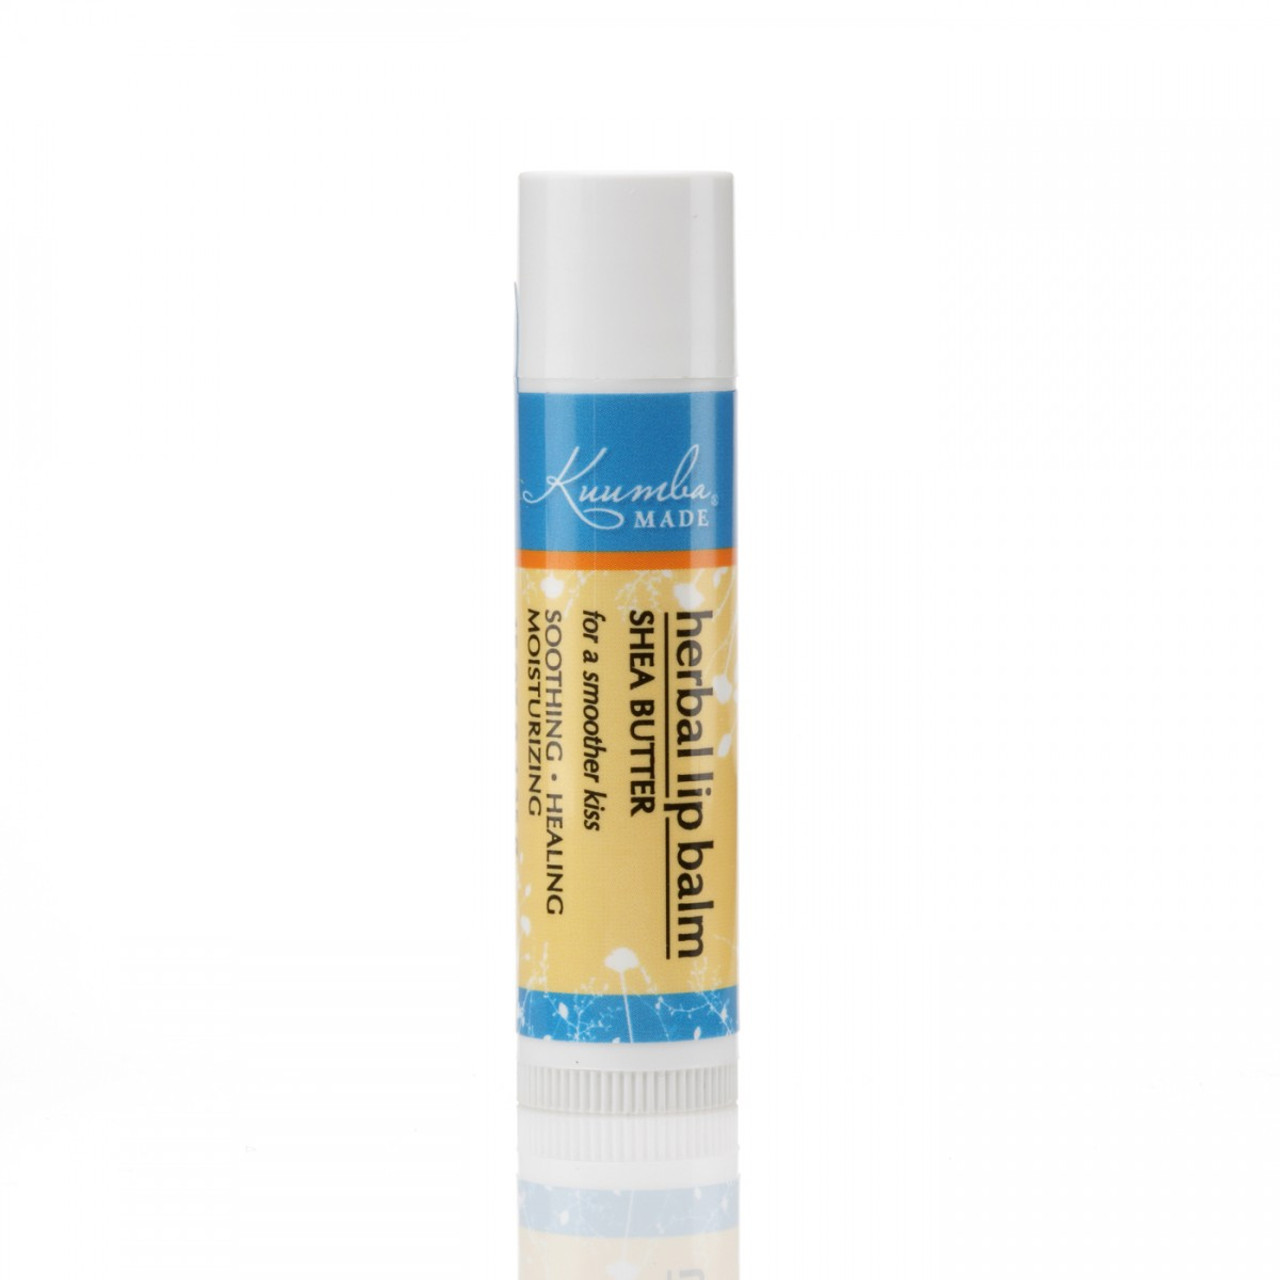 Kuumba Made Shea Butter Flavoured Organic Lip Balm